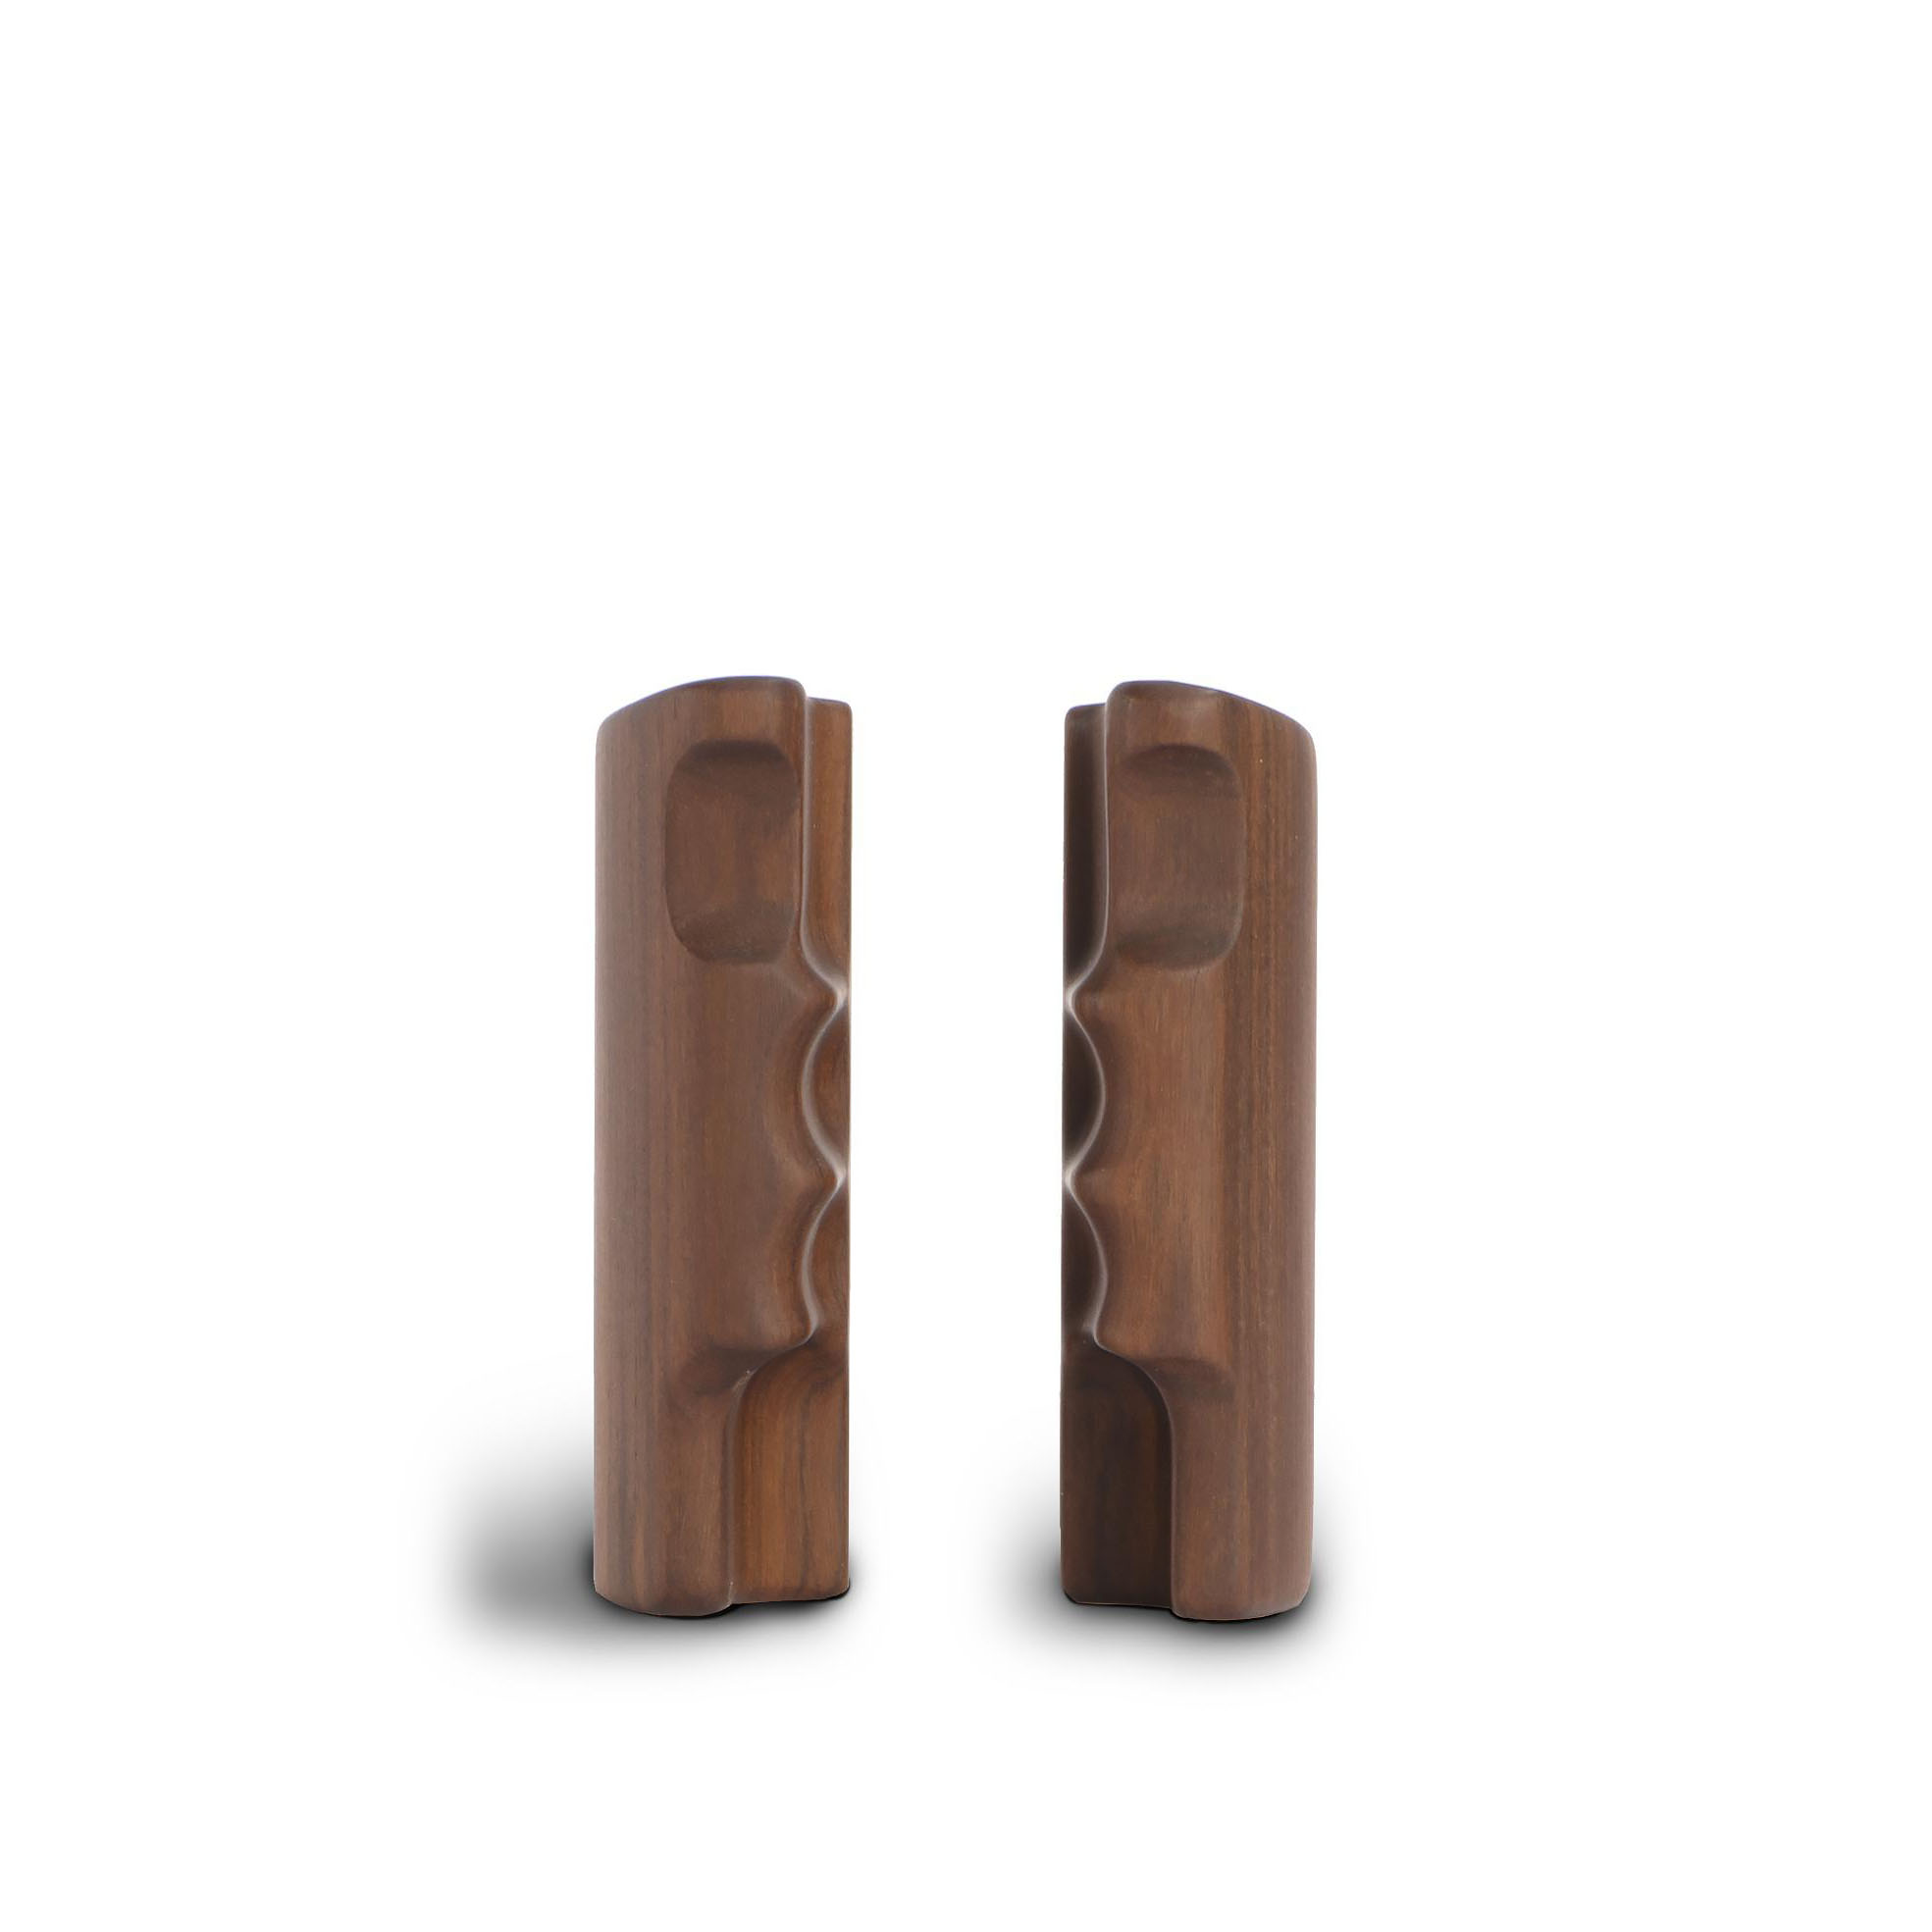 ALPA PLUS handgrip pair, rosewood natural